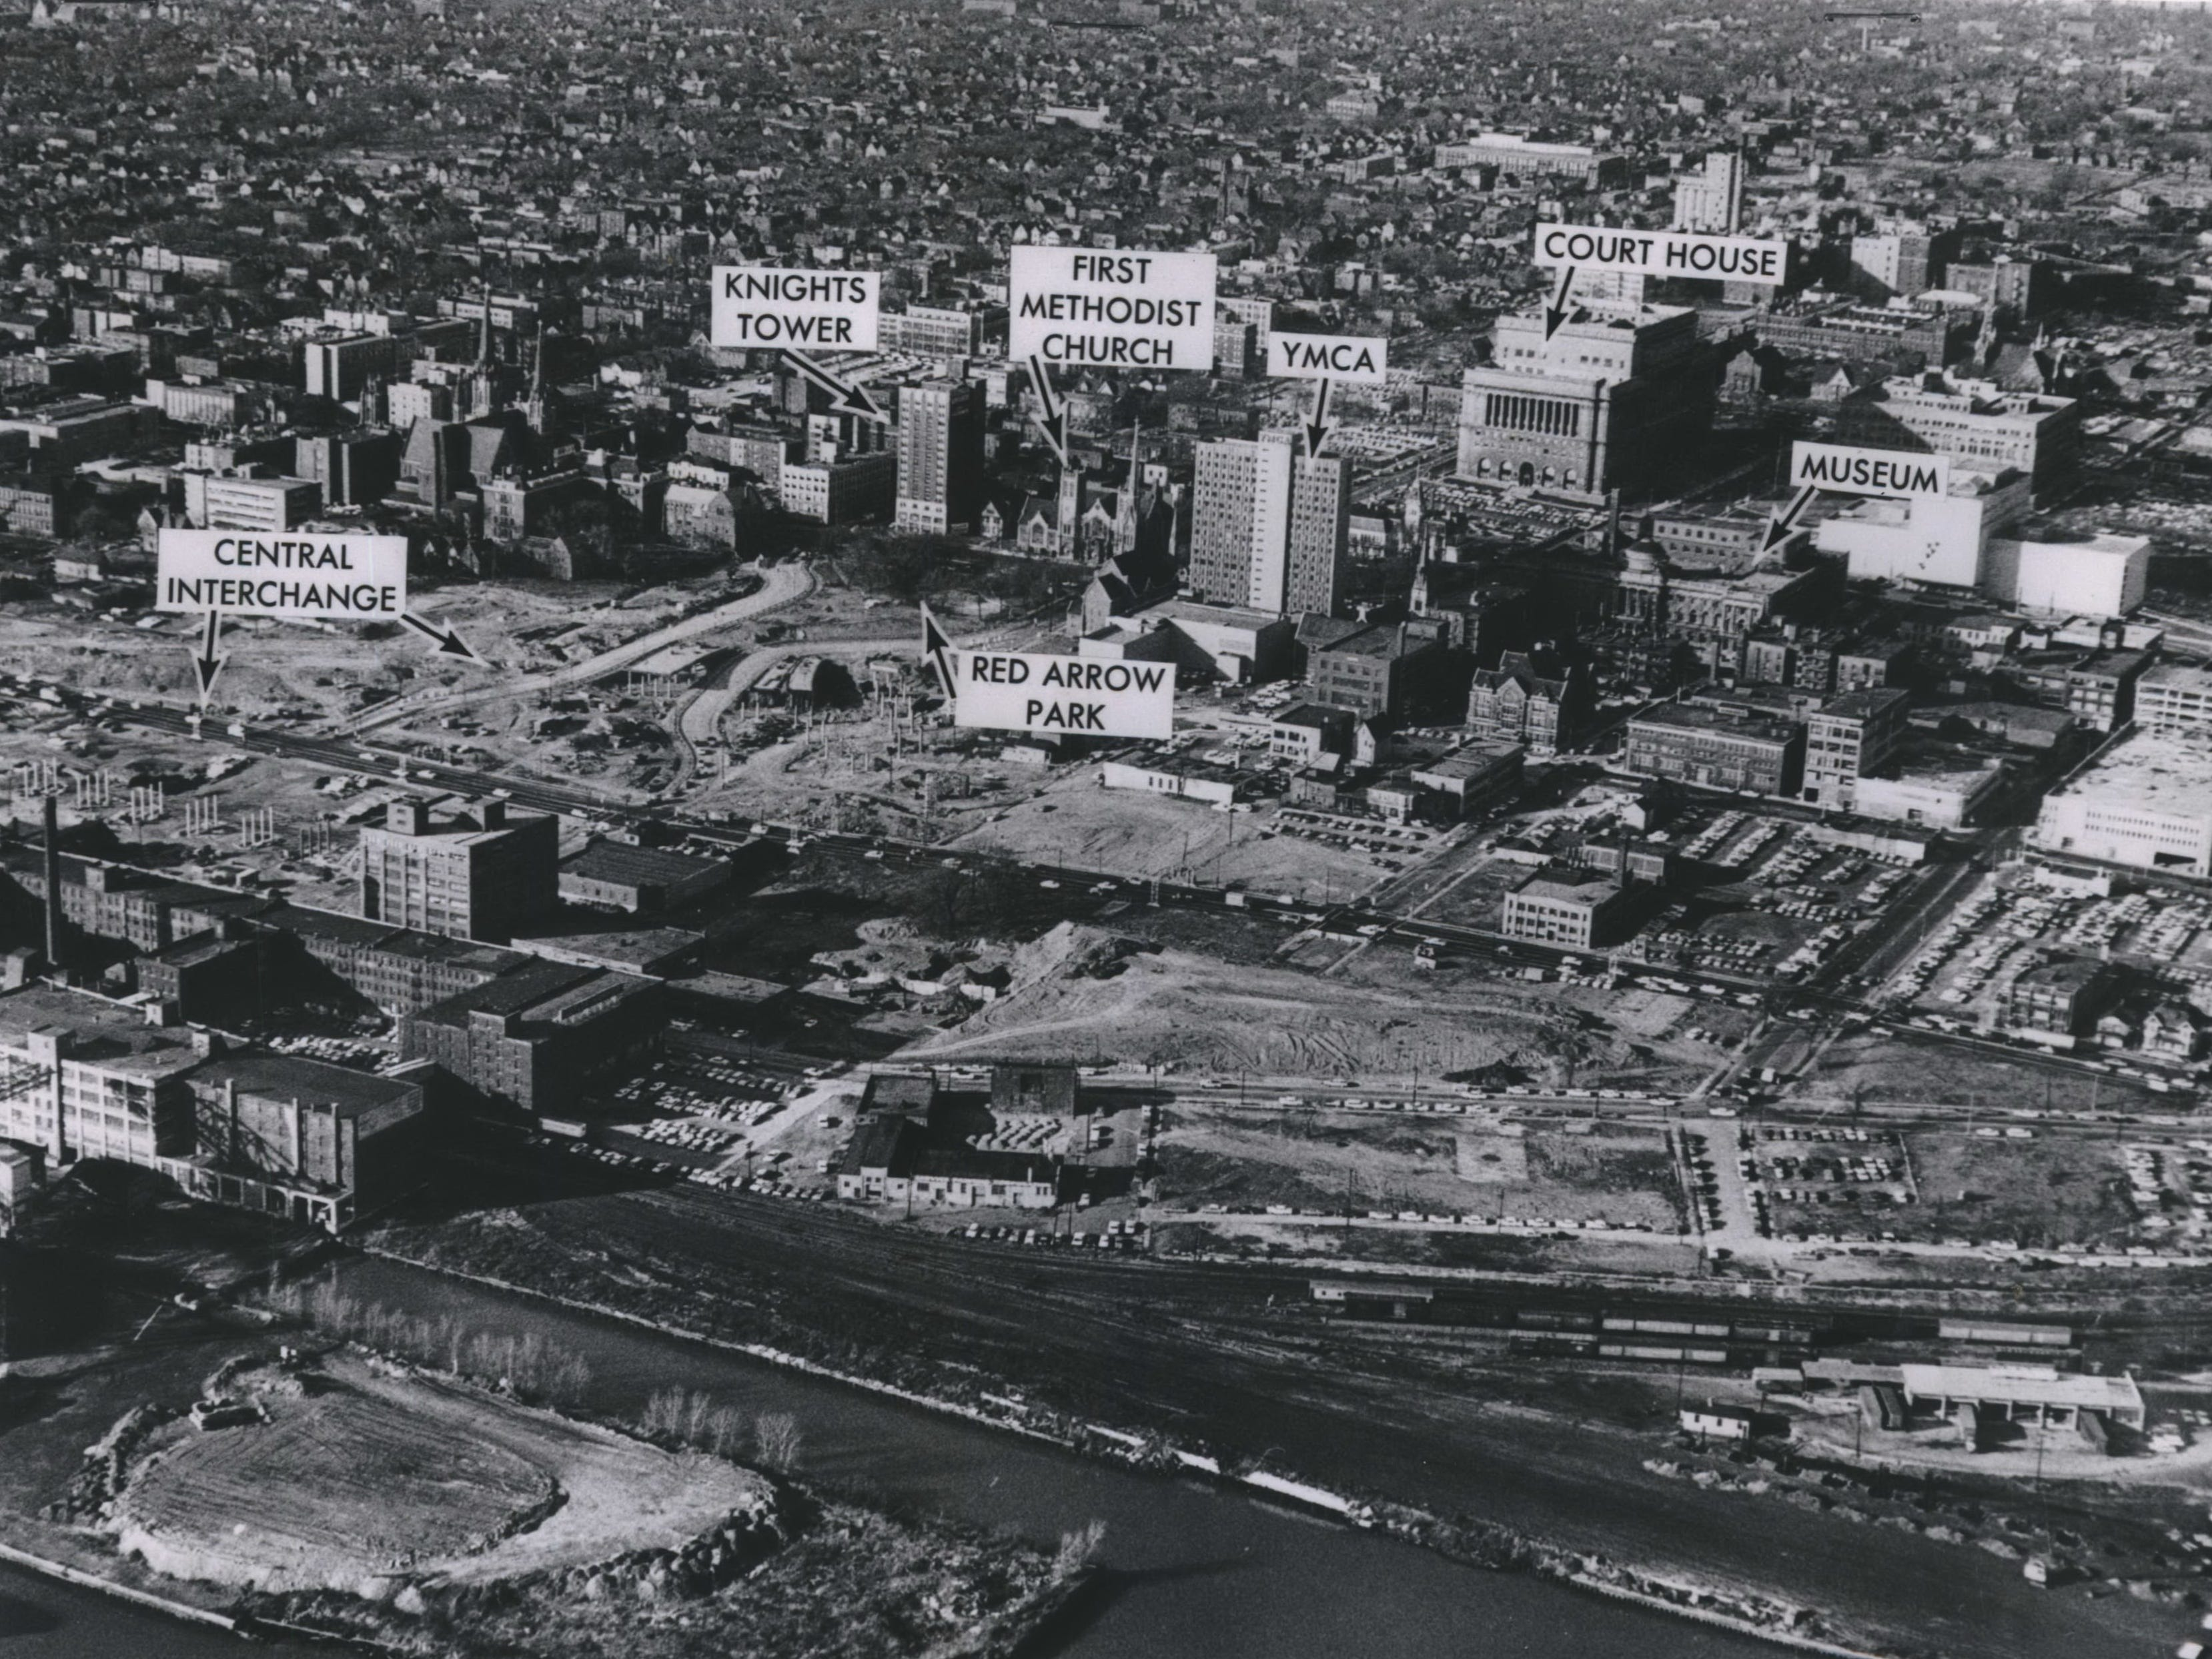 This aerial view of Milwaukee's downtown before construction began in 1964 shows how much the landscape was about to change. At the center of the photo is Red Arrow Park and First Methodist Church, both of which would be removed to make way for the High-Rise Bridge and connecting to the Marquette Interchange. This photo illustratoin was published in the Nov. 24, 1964, Milwaukee Journal.